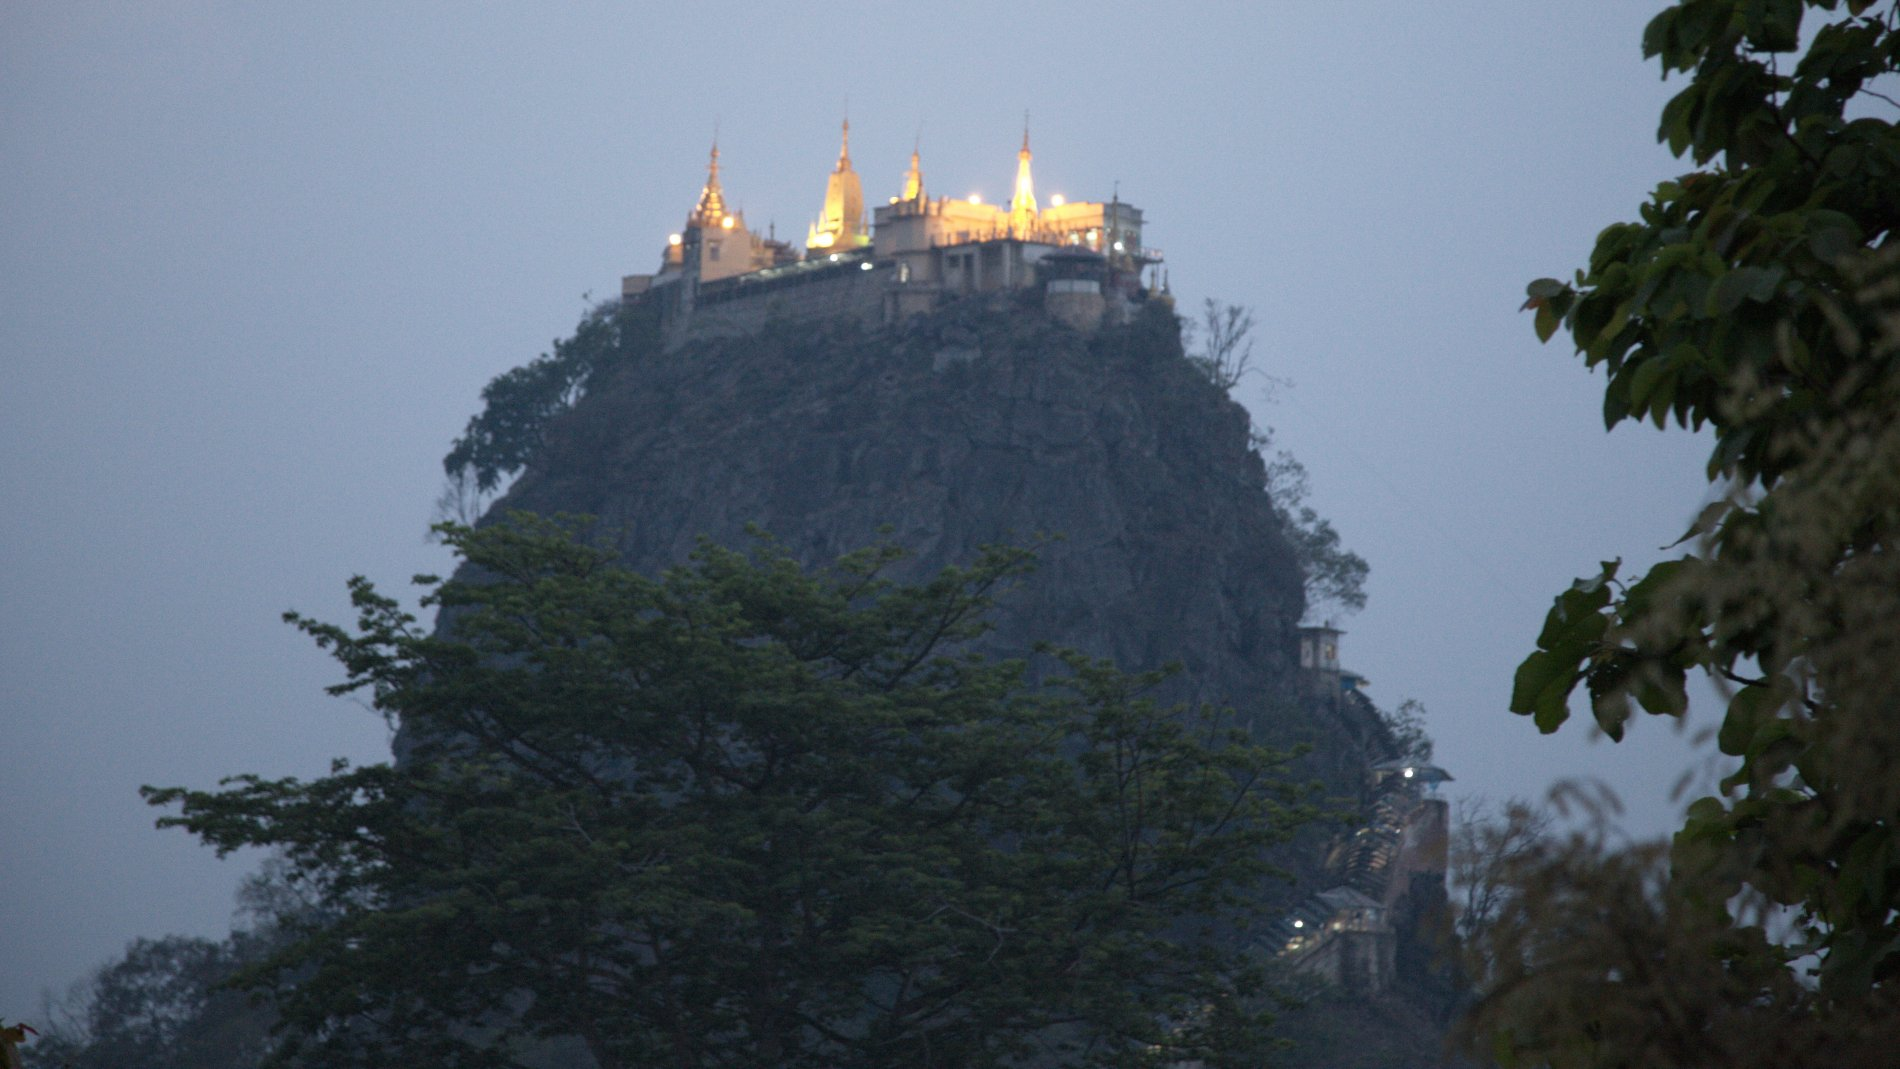 Mount_Popa_19.jpg-commment